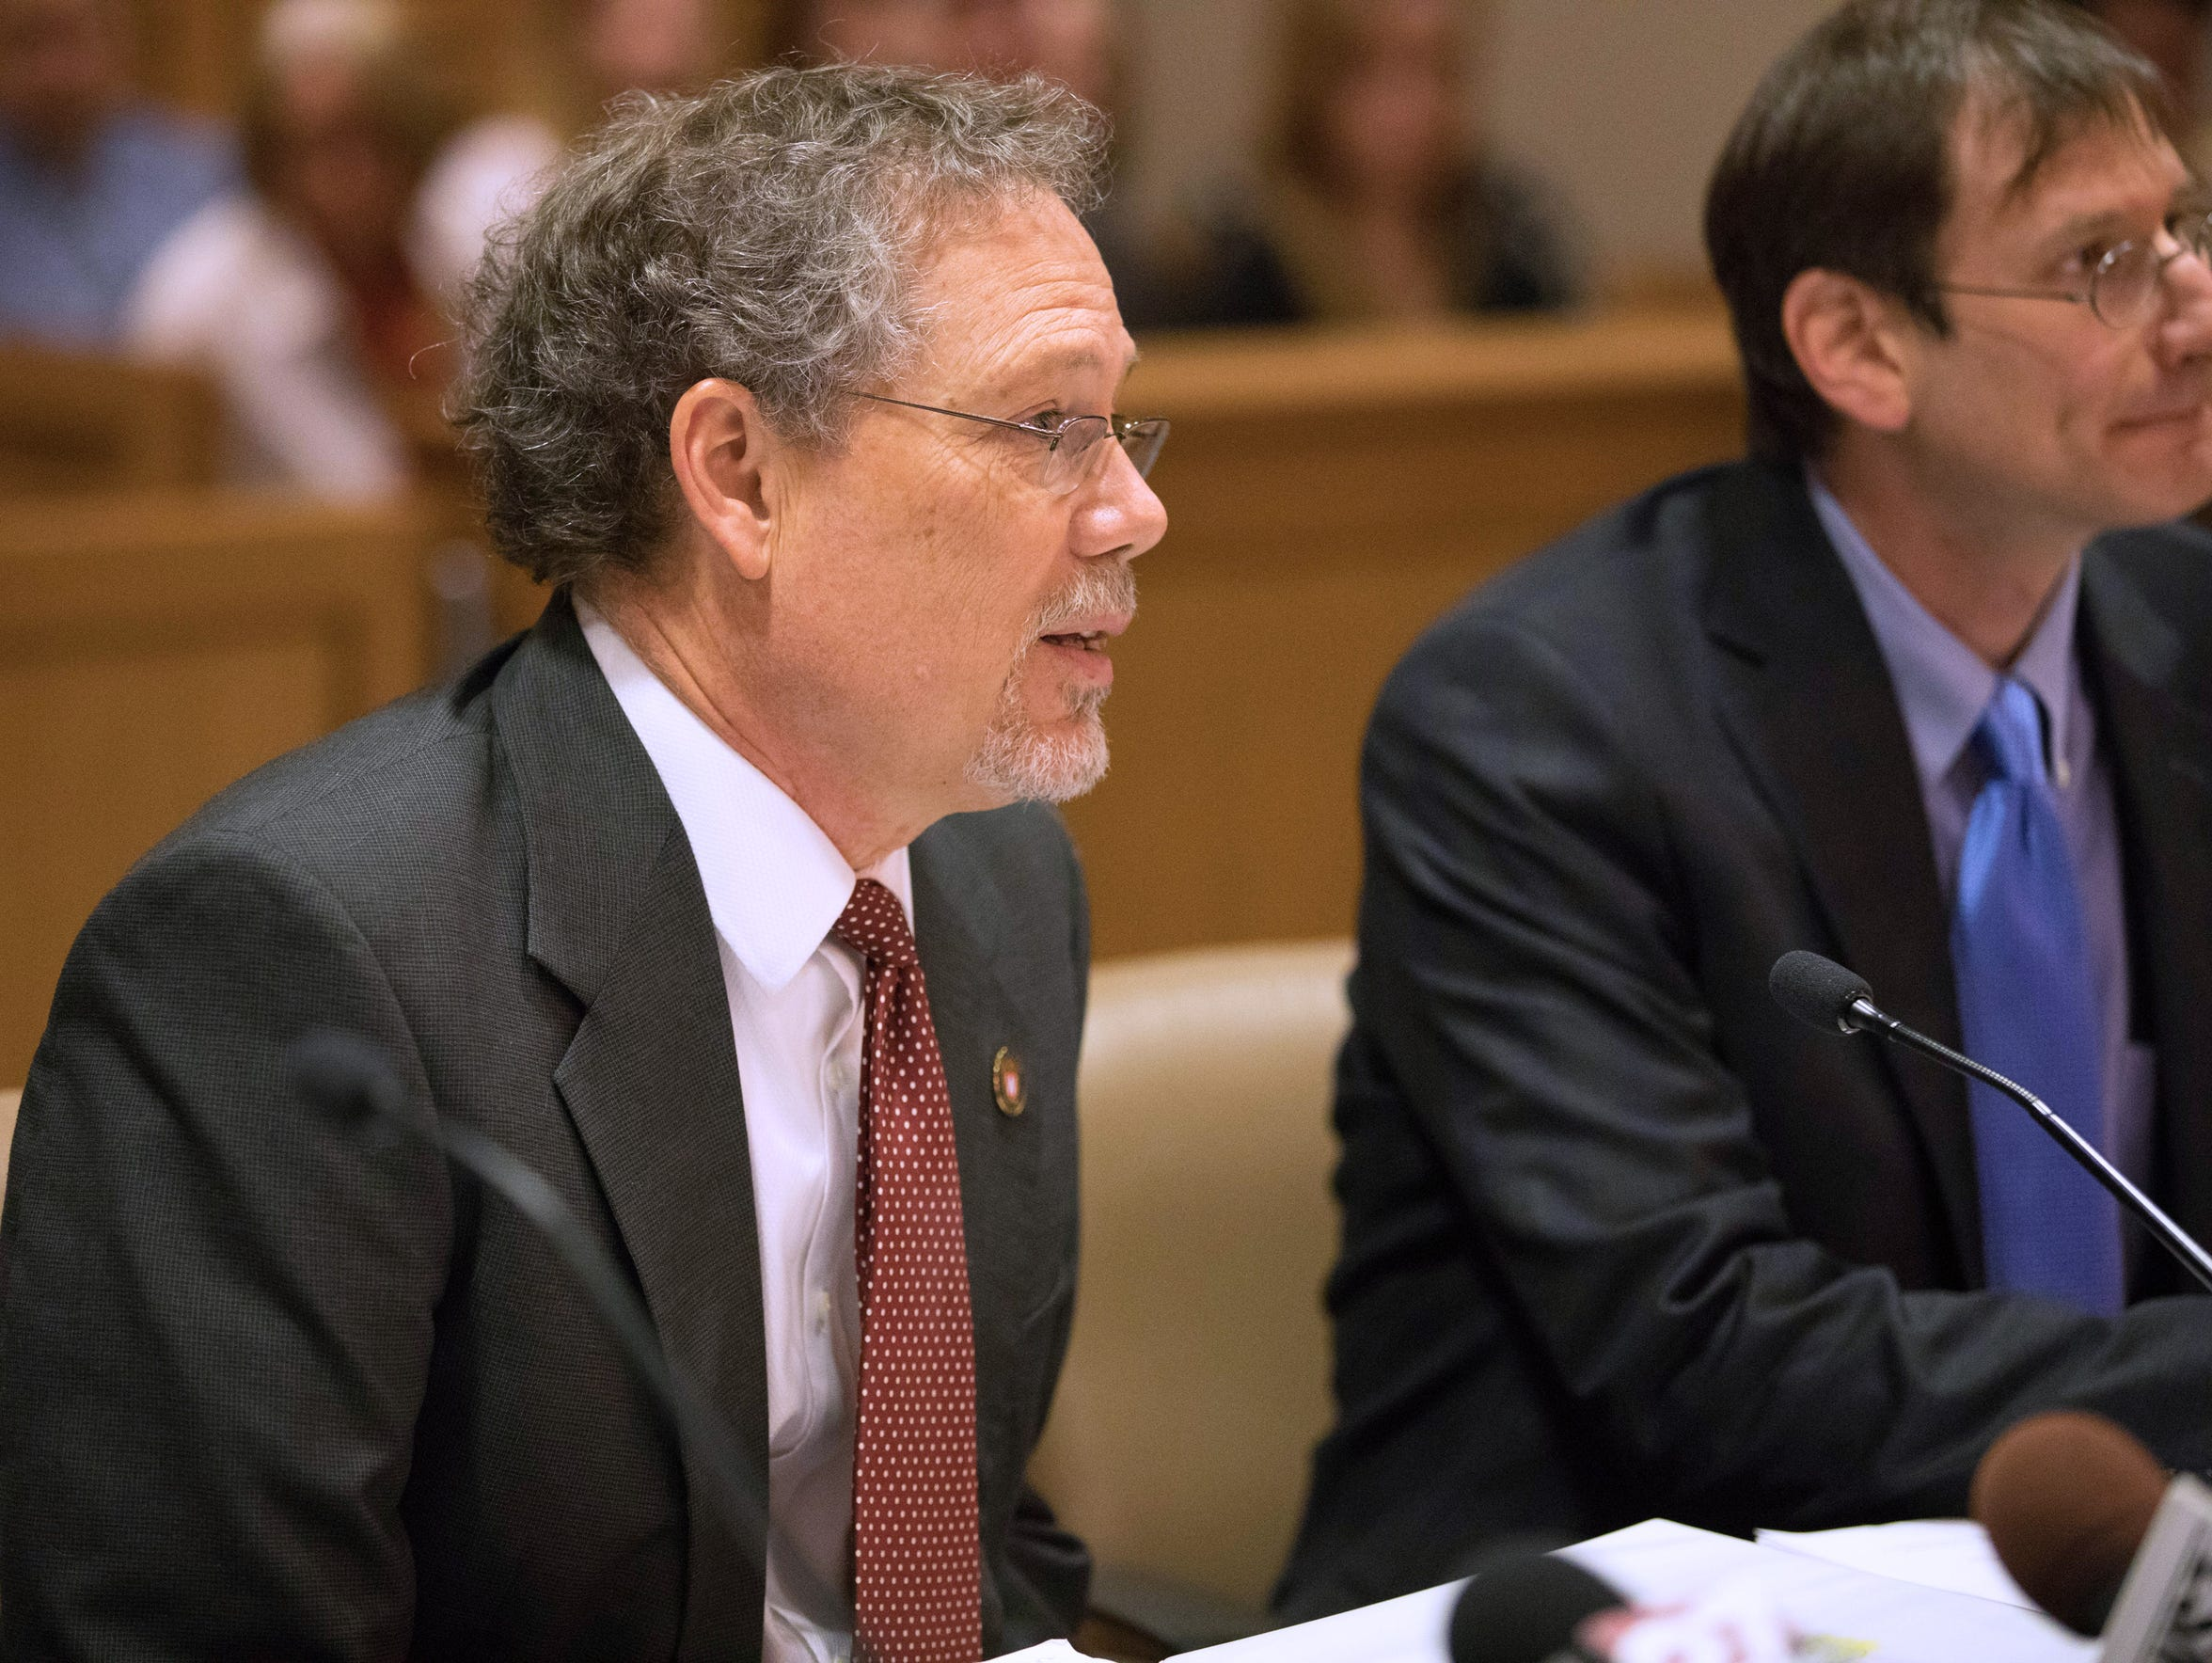 Keith Findley, co-director of the Wisconsin Innocence